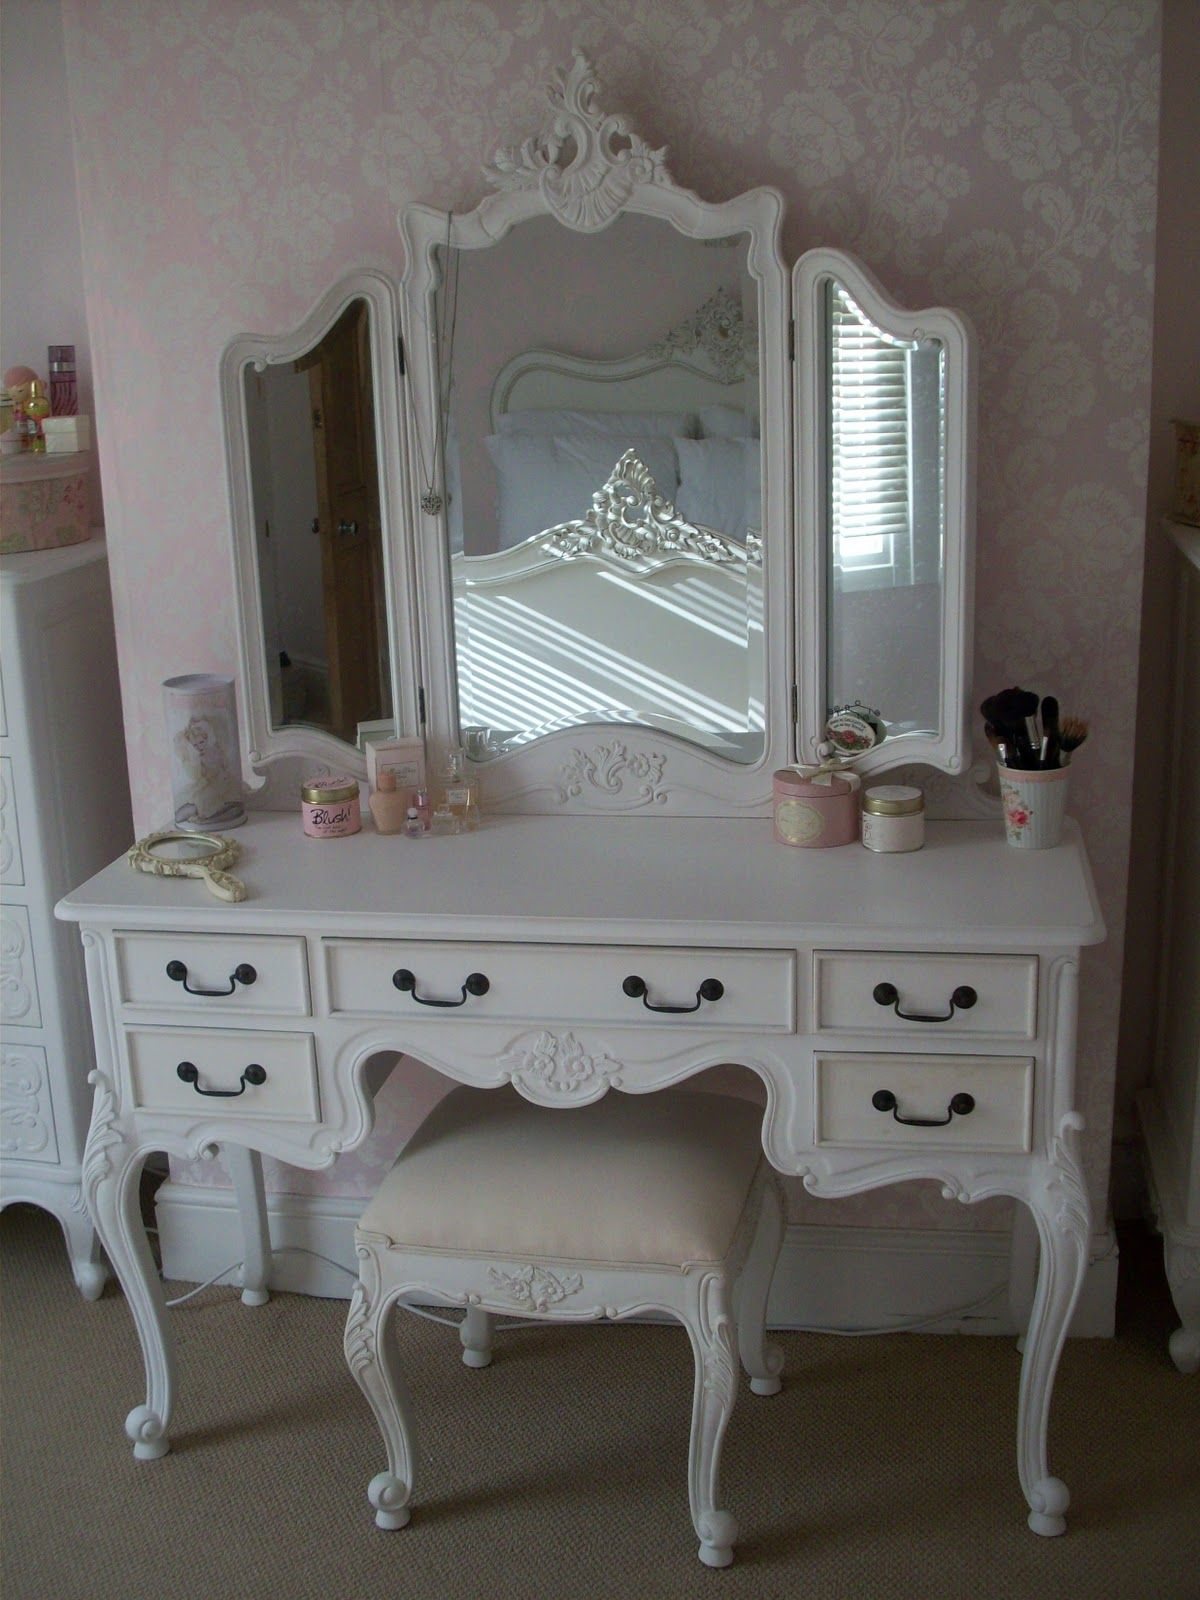 Amazing White Wooden Tri Fold Dresser Vanity Makeup Table With 5 Drawer And S